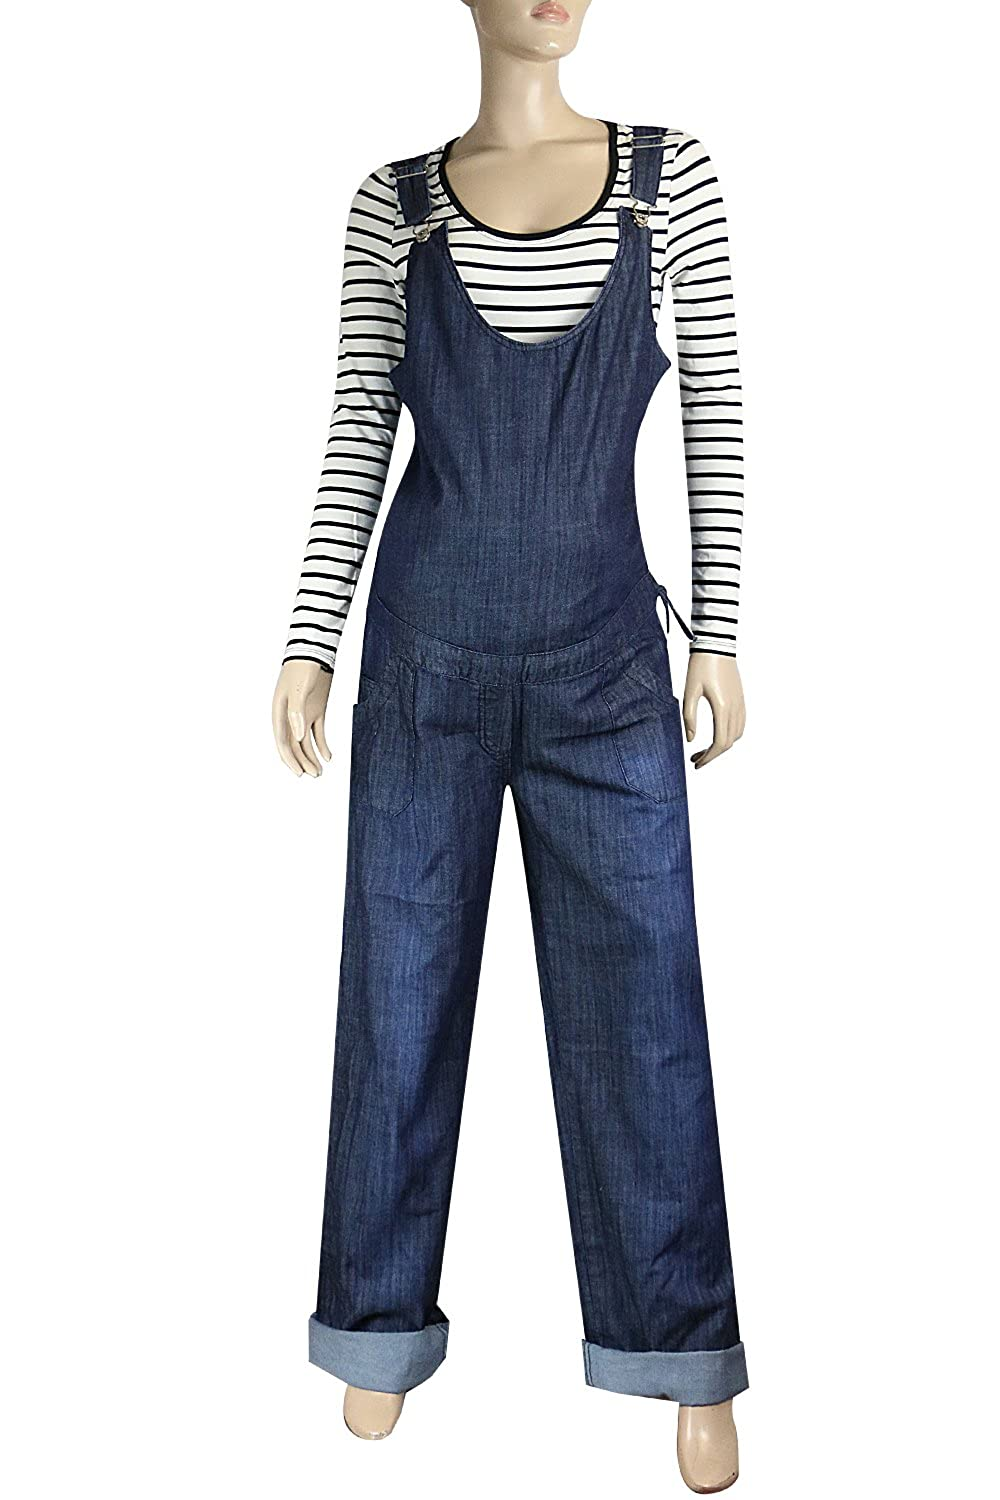 Clove Ladies Maternity Dungarees Blue Denim Long and Tall Drawstring Plus Size 14-24